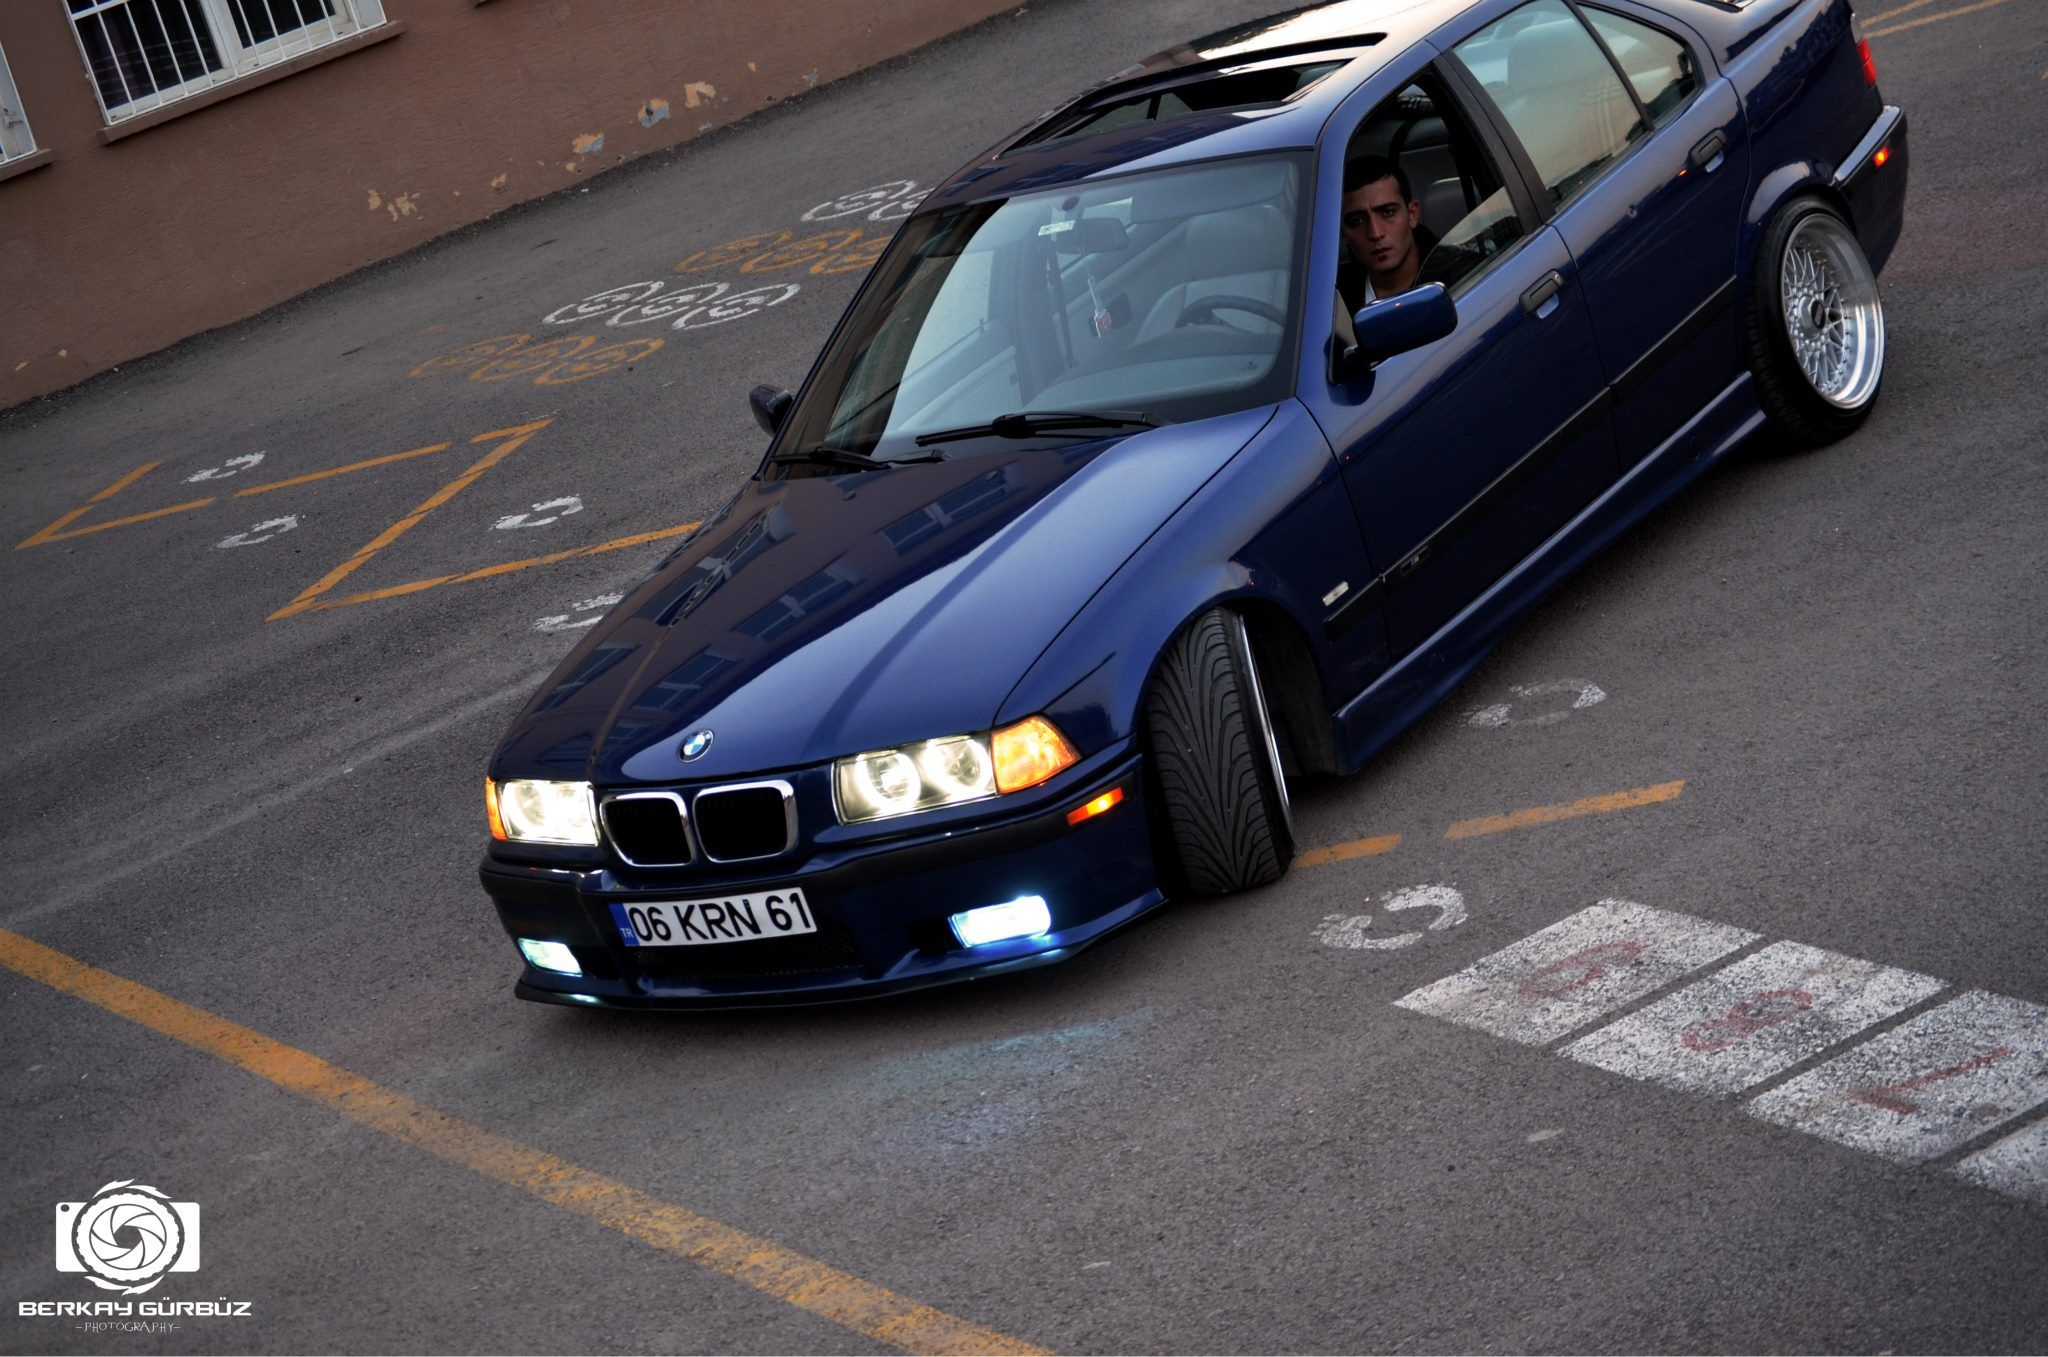 Anthrazit Metallic Bmw Dark Blue Bmw E36 Sedan On Bbs Rs Wheels Bmw E36 Stance